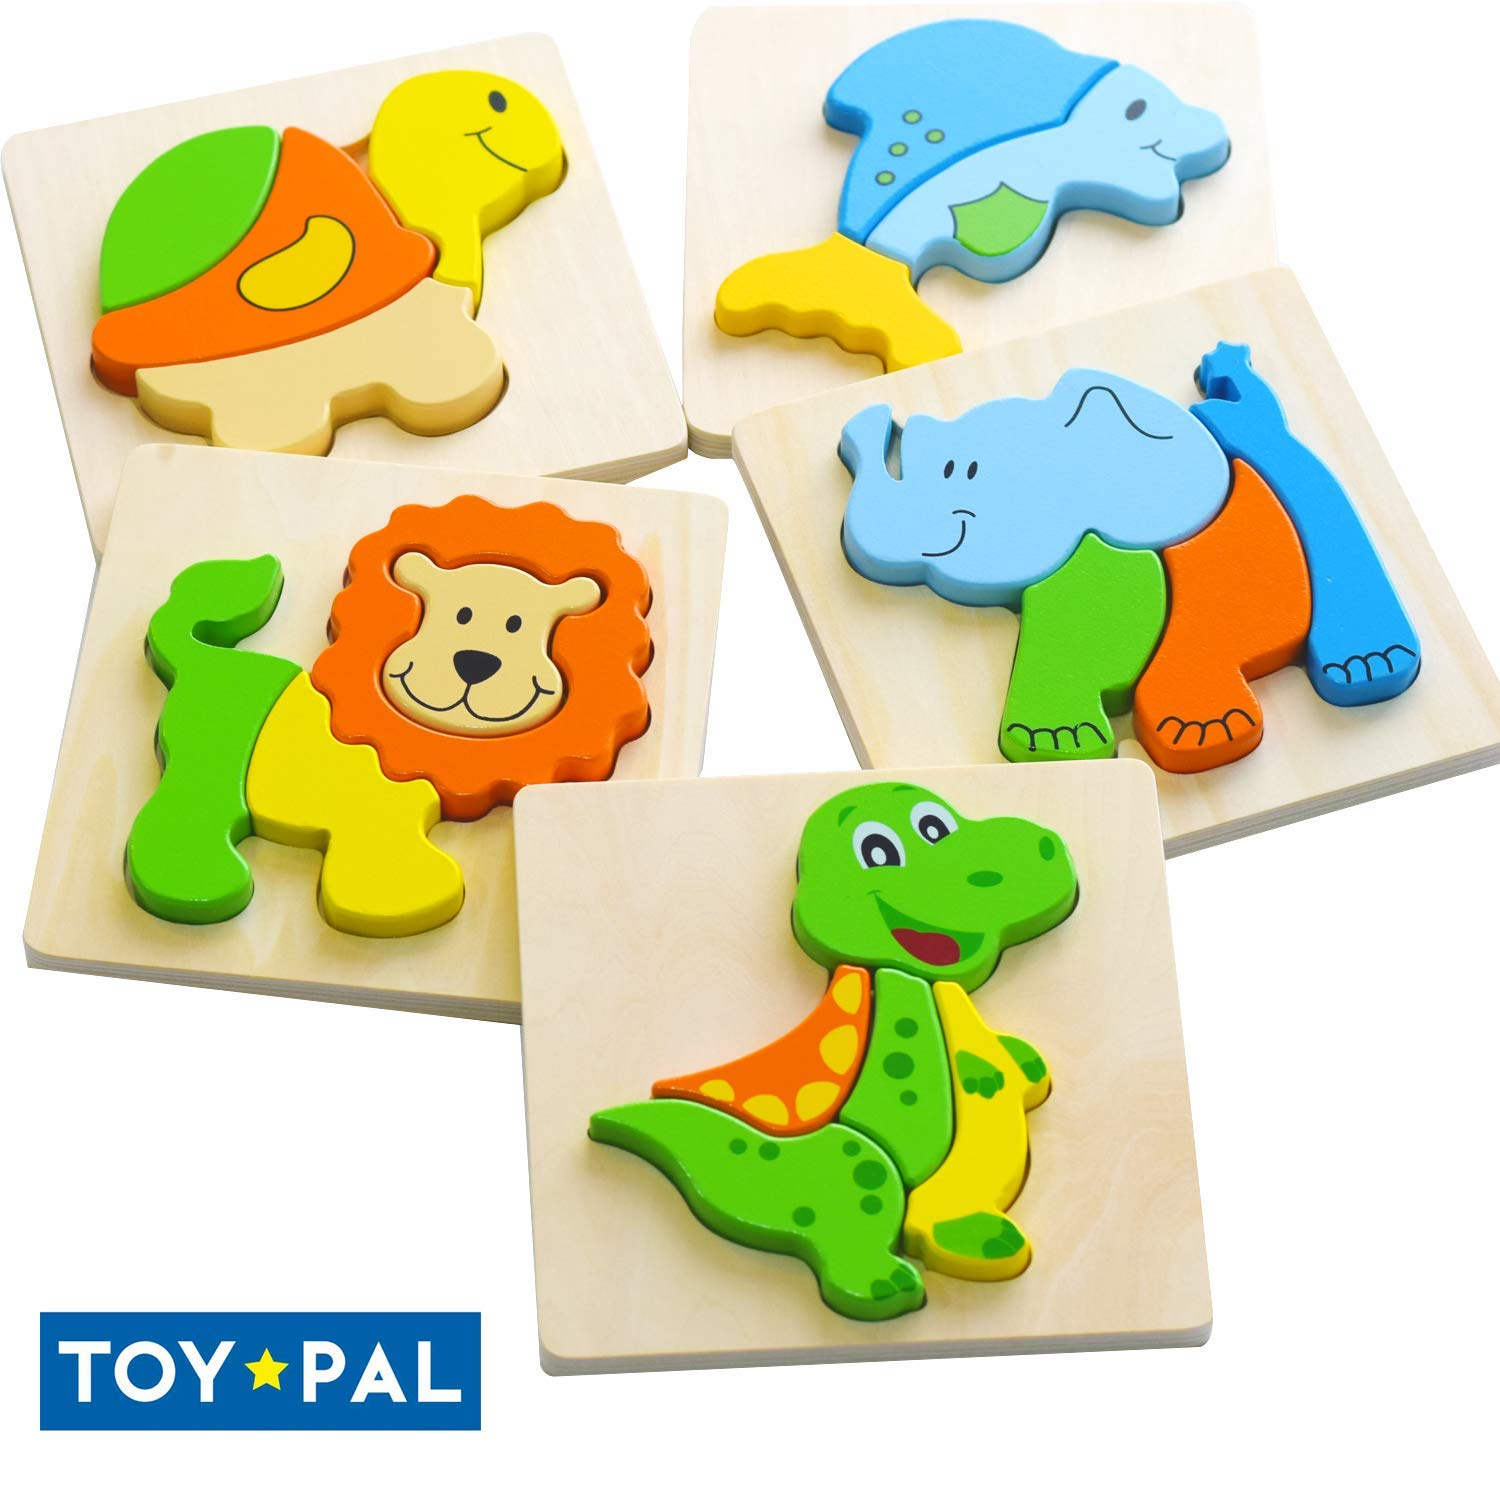 Toy Pal Wooden Puzzles for Toddlers, Set of 5 Animal Jigsaw Toddler Puzzles for 1 2 3 Years Old, Educational Toys Gift for Boys & Girls Age 1 2 3 Years Old by ToyPal